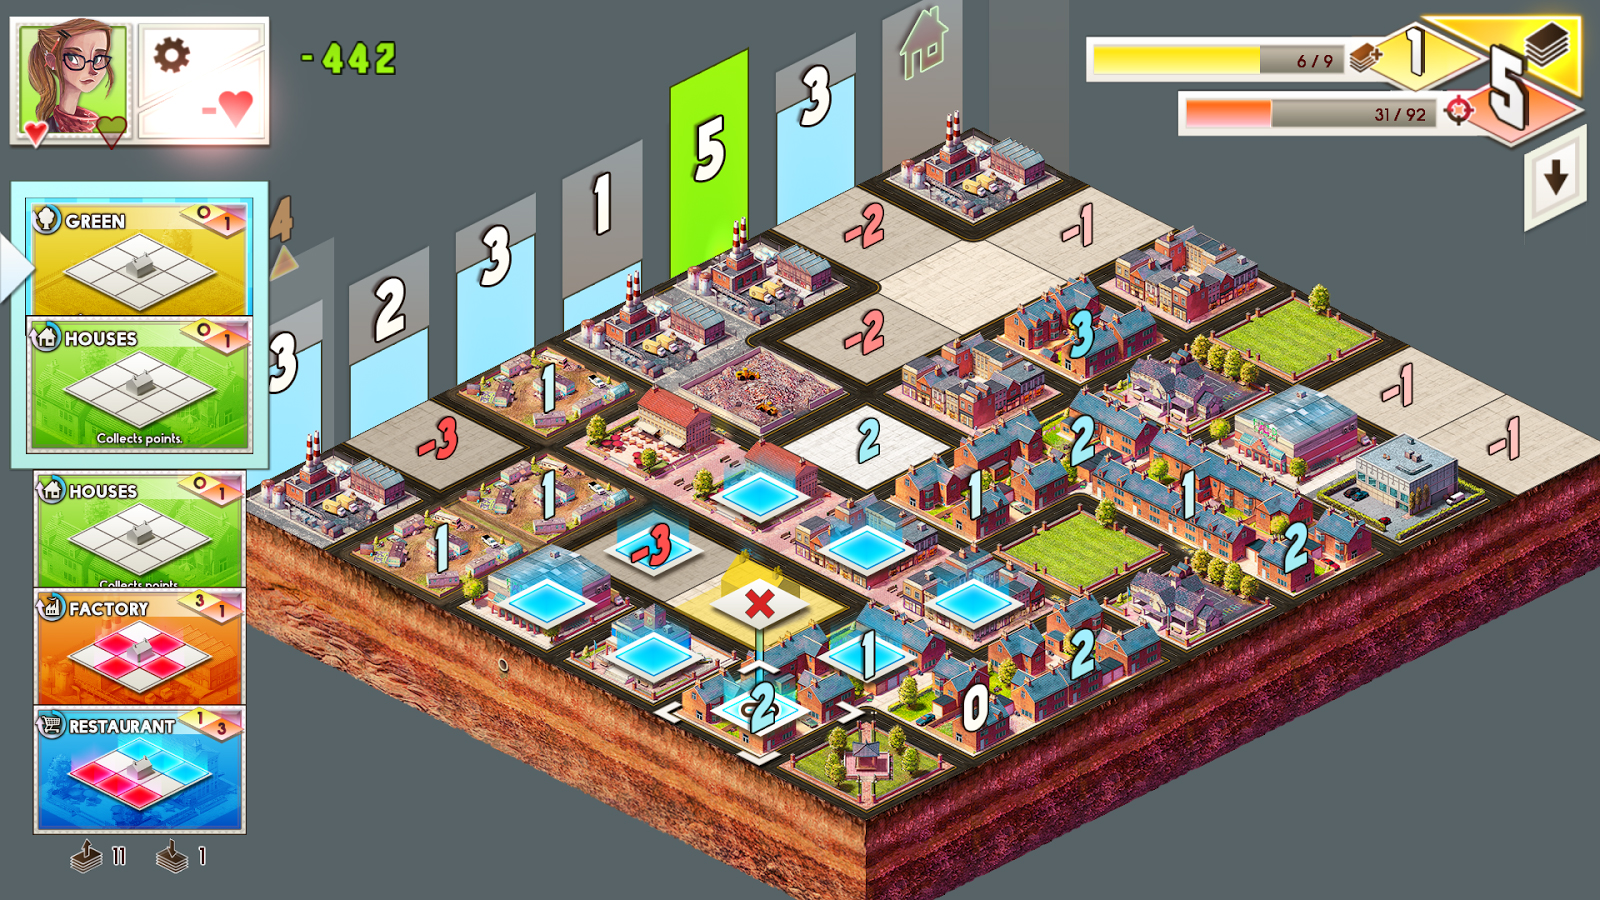 8p362JtVQVbPQjDsFJCUKa - The best Android games